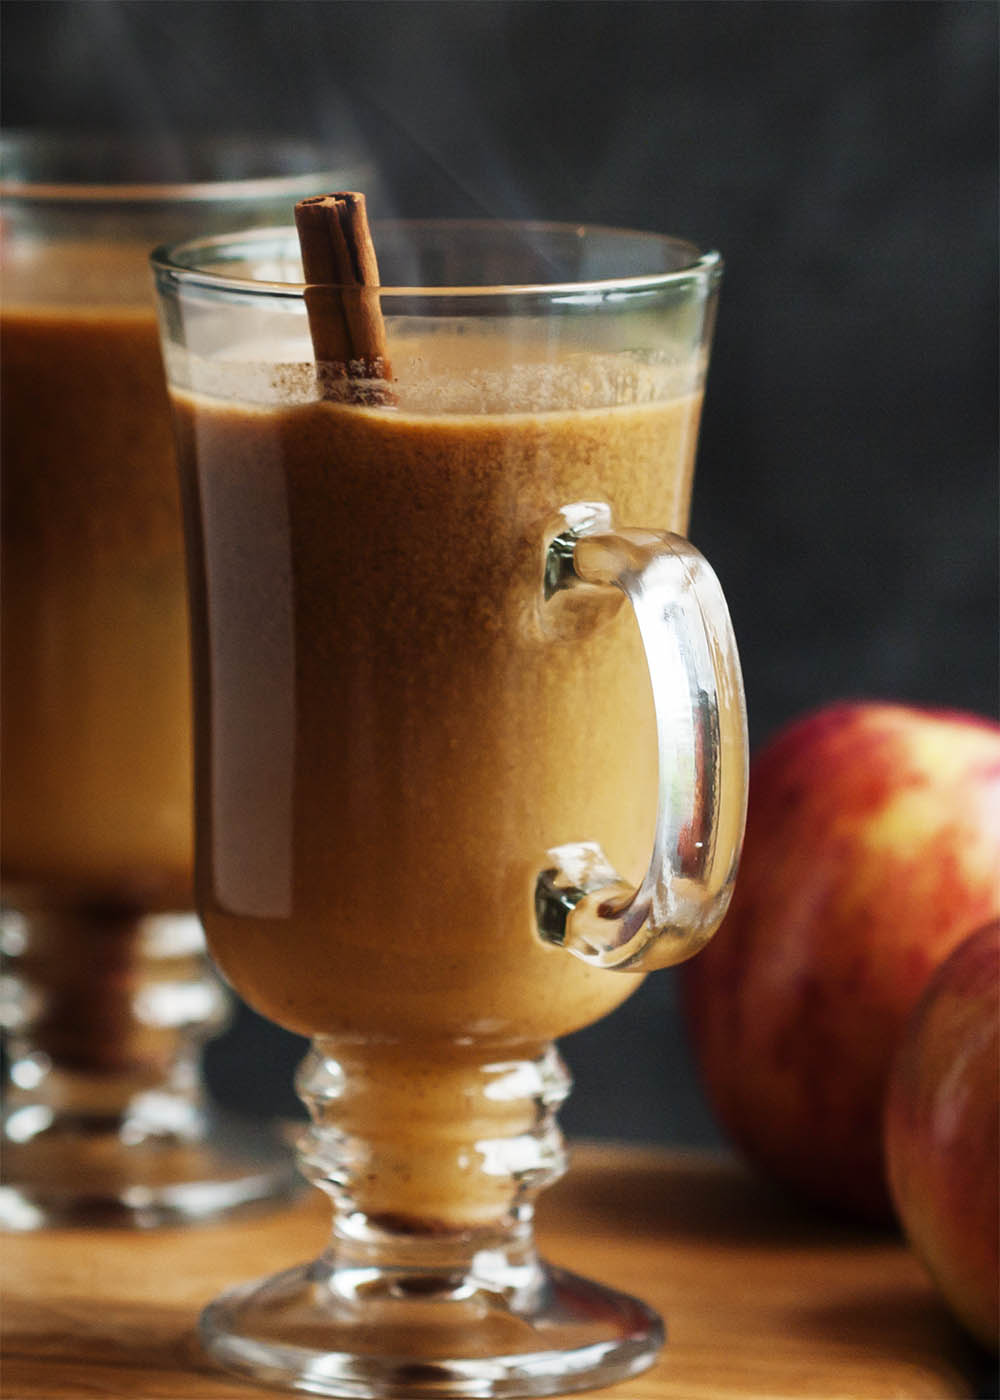 Hot Apple Pie Bourbon Cocktail - This twist on hot buttered bourbon uses cider and butterscotch sauce to make the perfect thanksgiving or fall cocktail. | justalittlebitofbacon.com